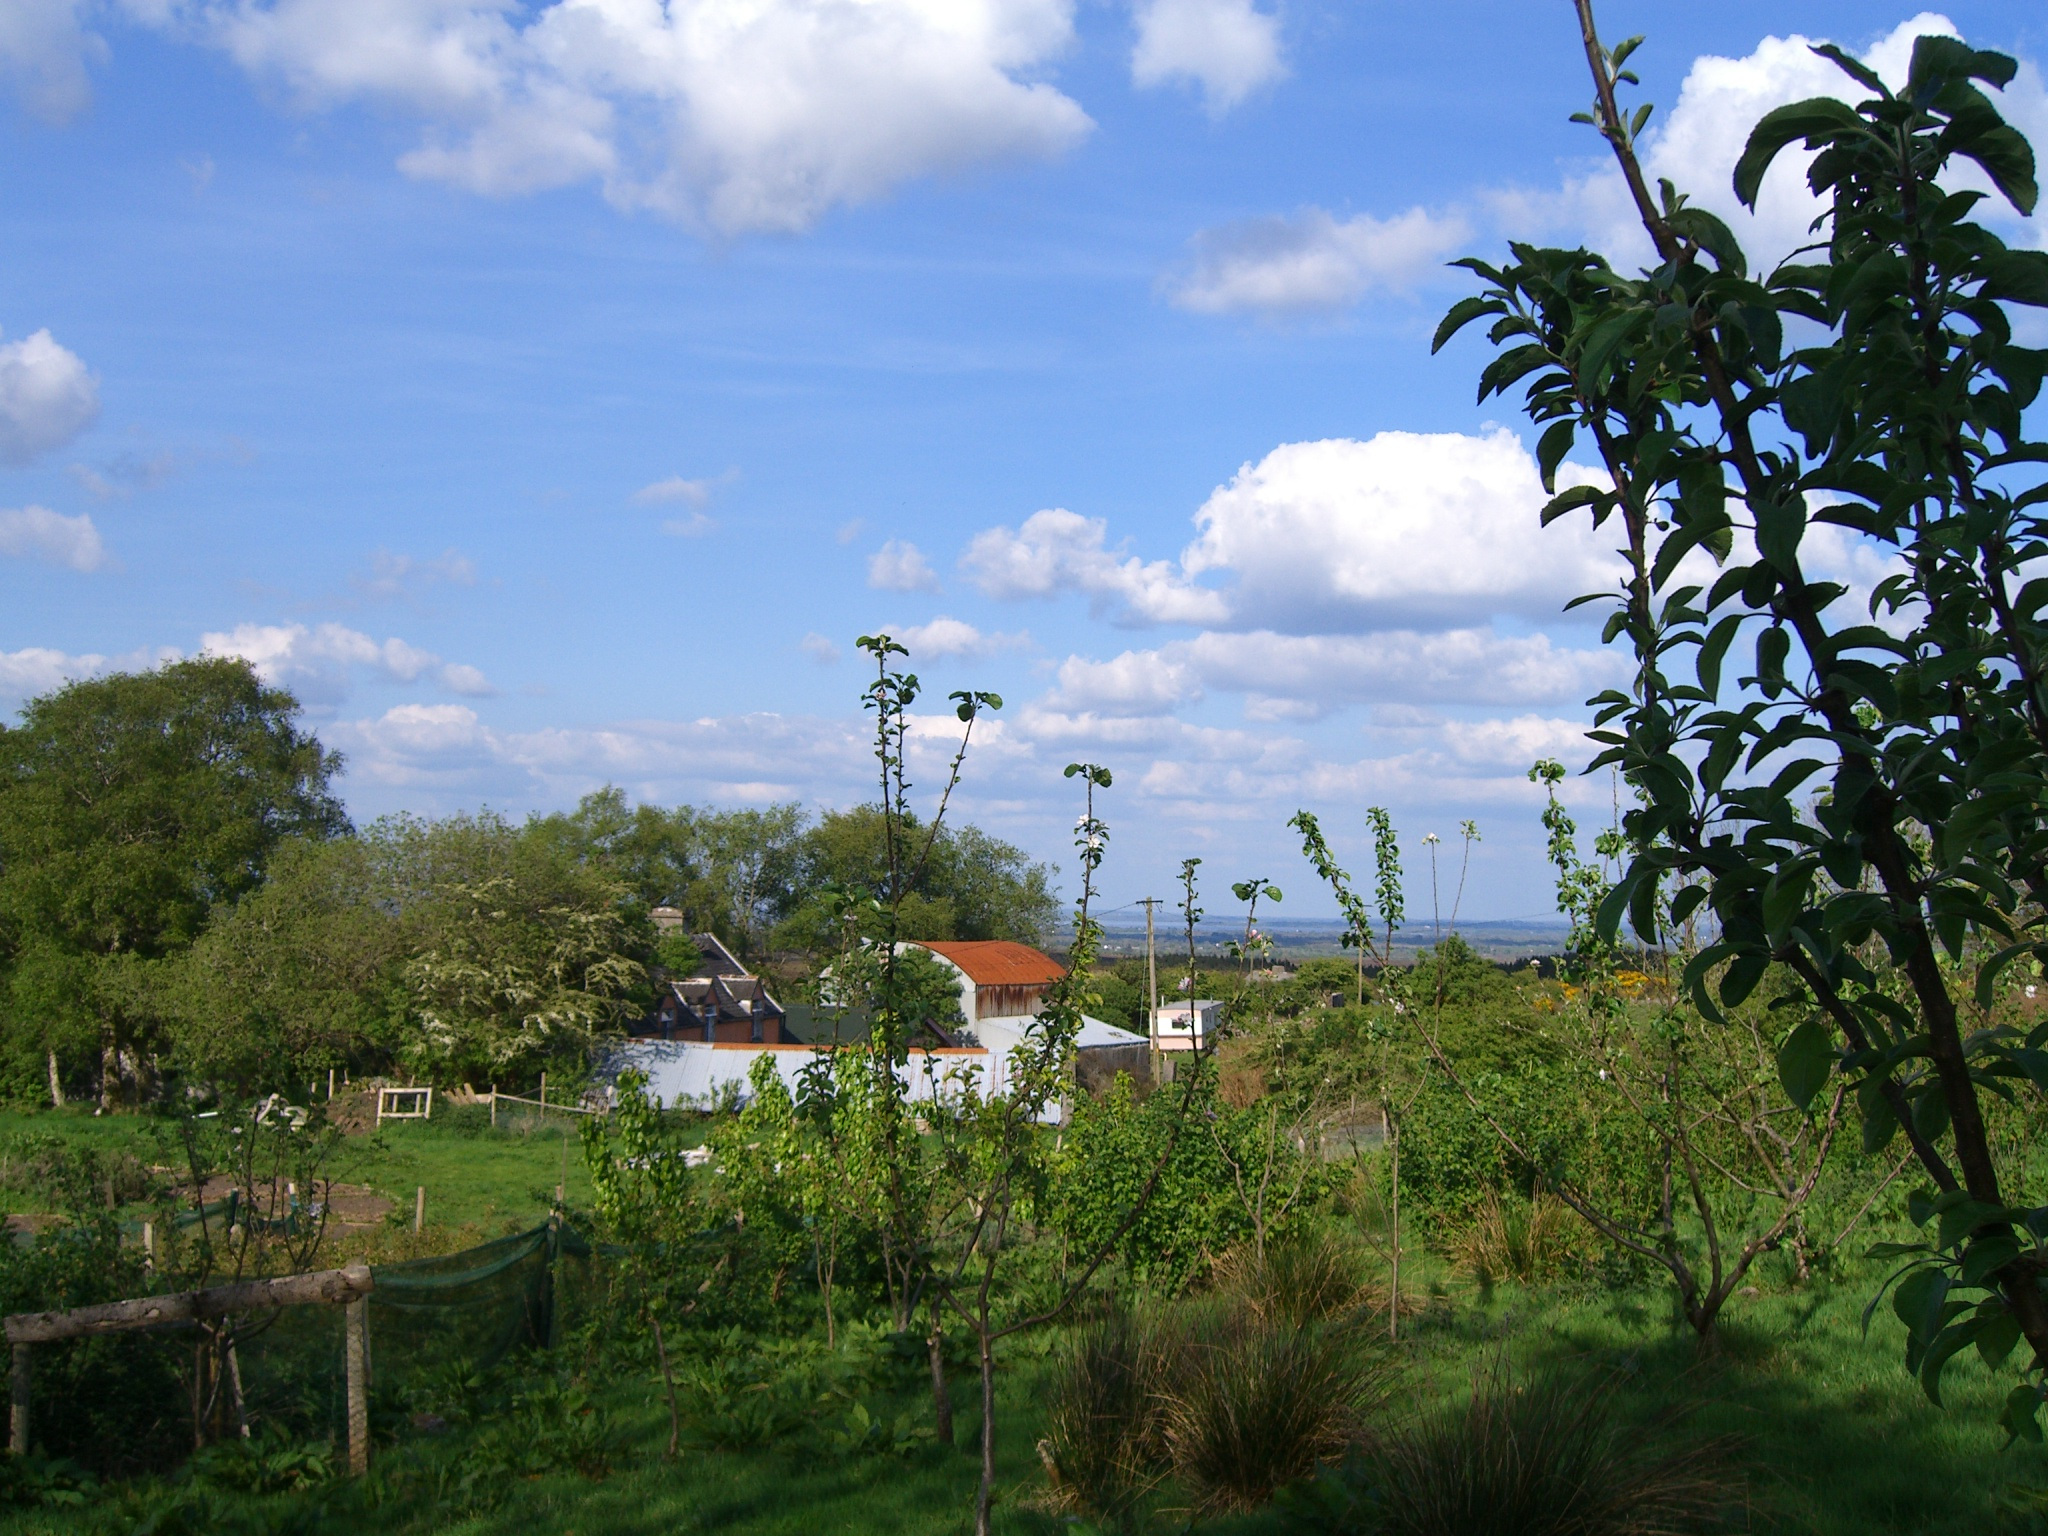 A view through the young orchard